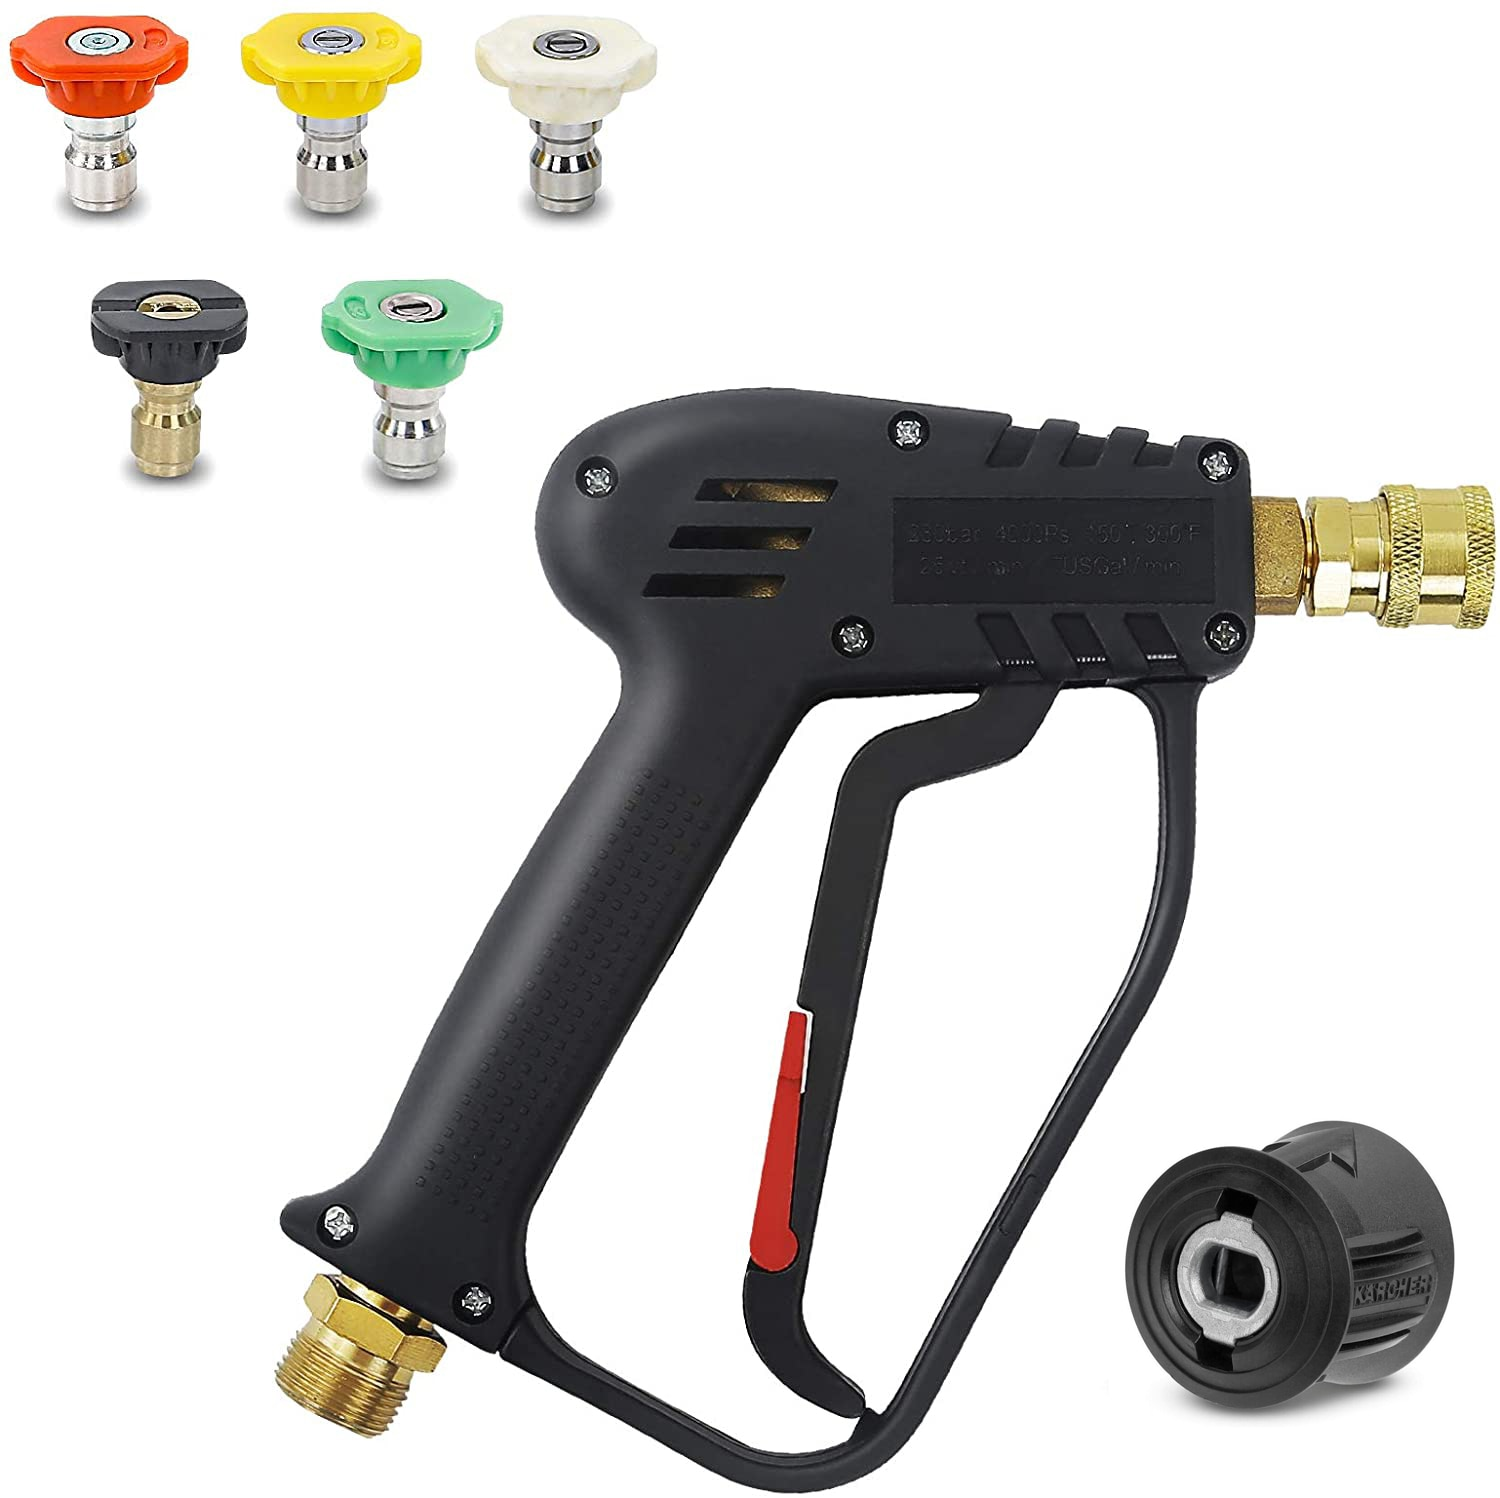 AliExpress - High Pressure Cleaning Gun Karcher 4000PSI with 5 Quick Connect Color Nozzle Kit Cleaning Water Gun for Car Cleaning